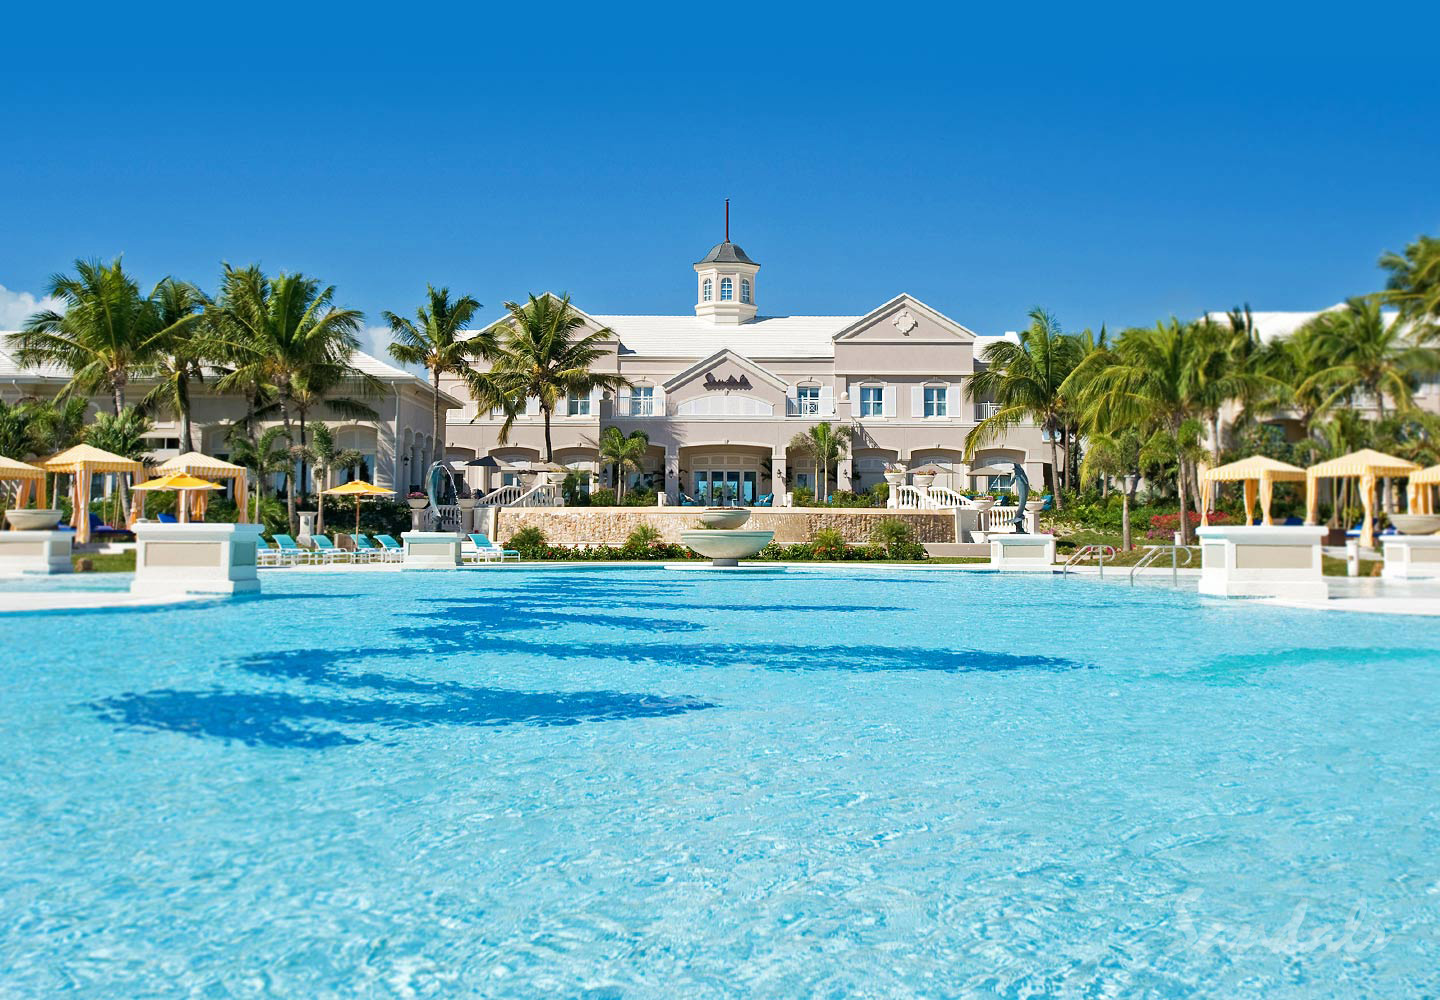 Travel Agency All-Inclusive Resort Sandals Emerald Bay 016